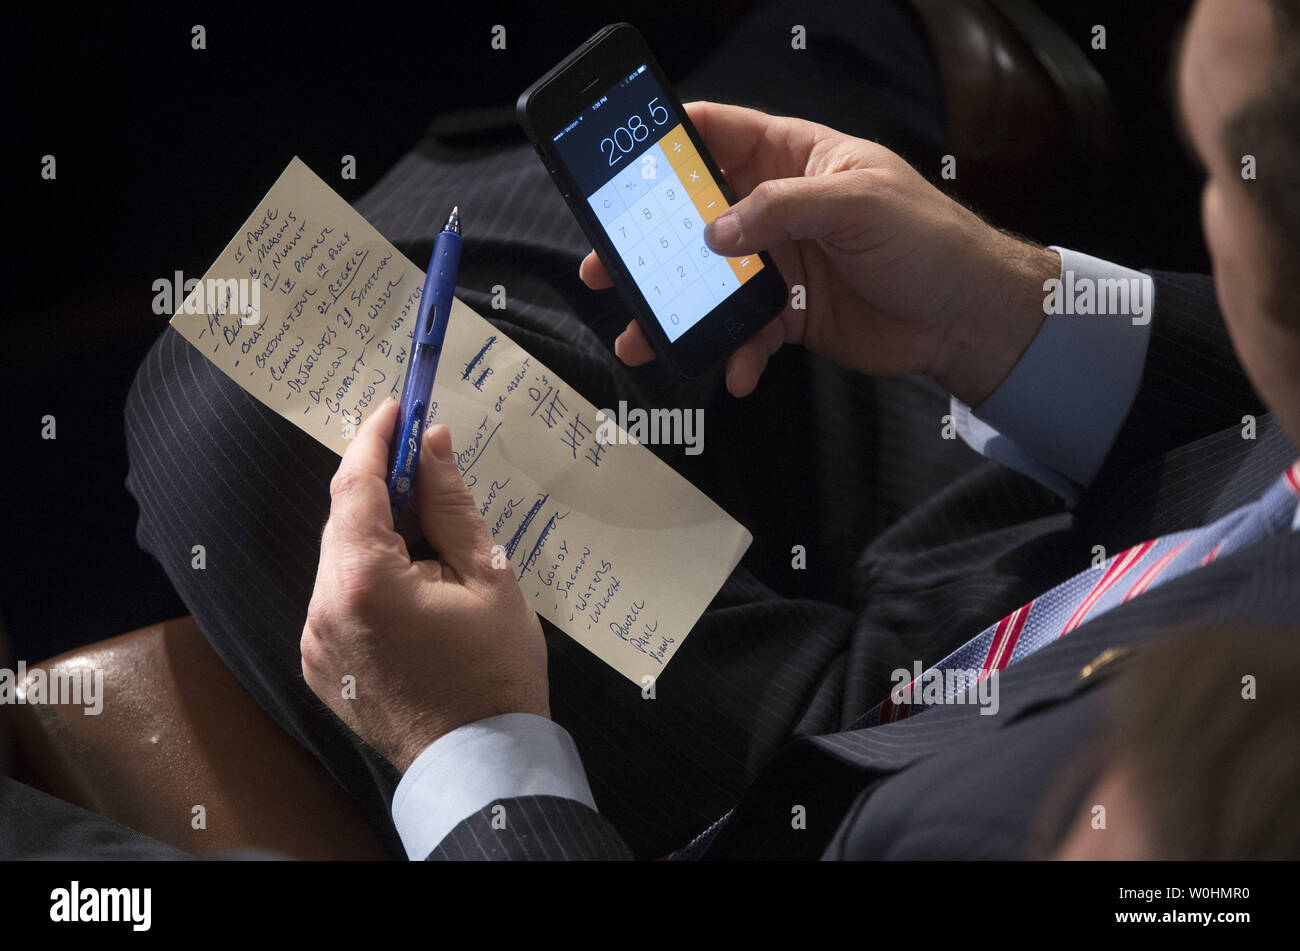 Rep. Marlin Stutzman, R-IN, add up votes during the election for Speaker of the House during the first day of the 114th Congress, inside the House Chambers of the U.S. Capitol Building in Washington, D.C. on January 6, 2015. Speaker John Boehner, R-OH, retained his position despite a Tea Party challenge. Photo by Kevin Dietsch/UPI - Stock Image